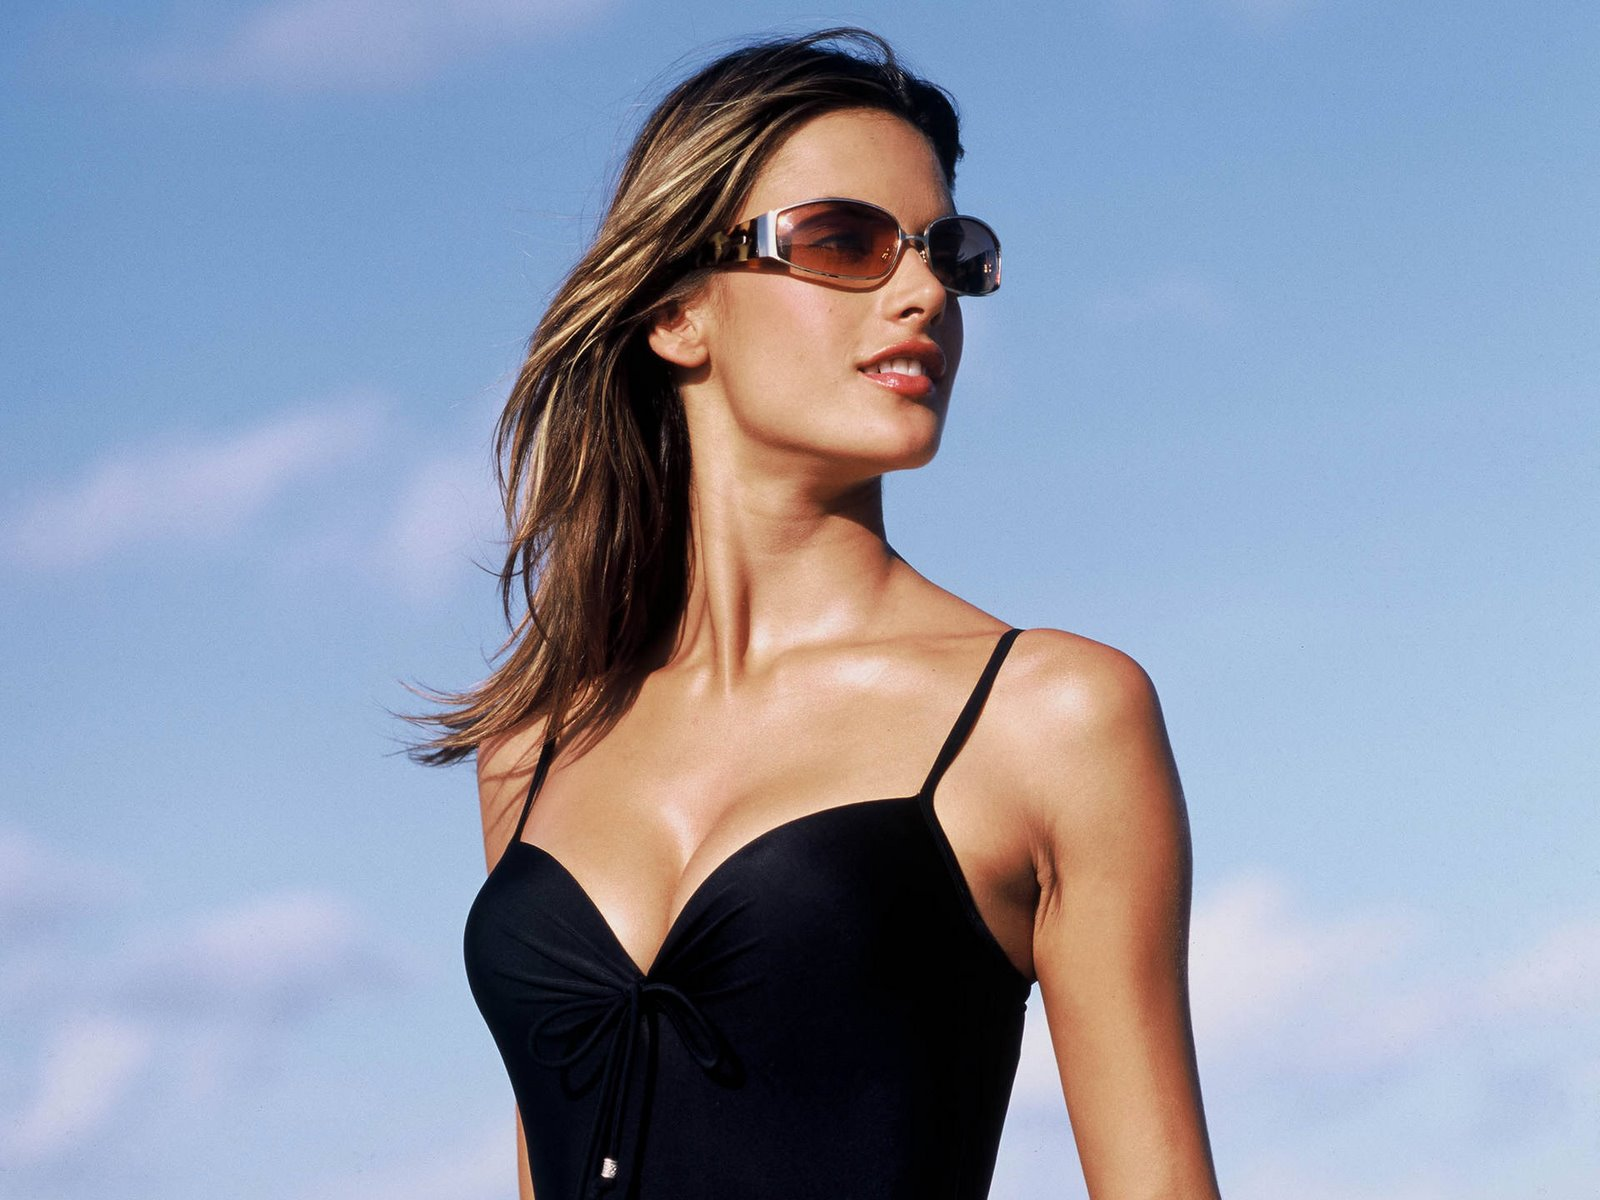 11 Gorgeous HD Alessandra Ambrosio Wallpapers